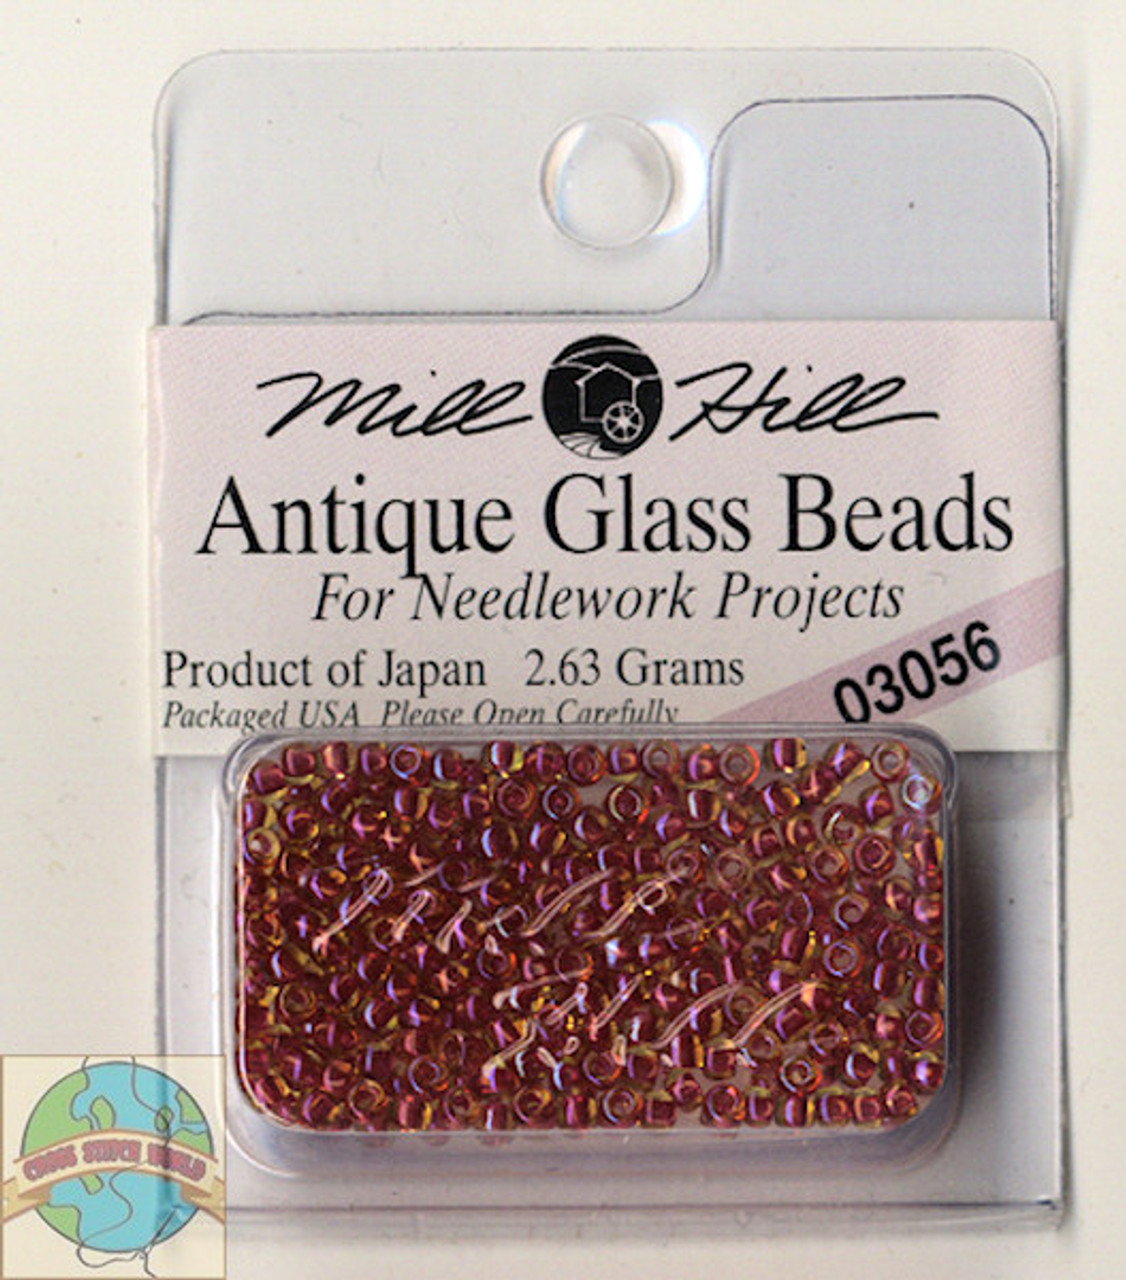 Mill Hill Antique Glass Beads 2.63g Antique Red